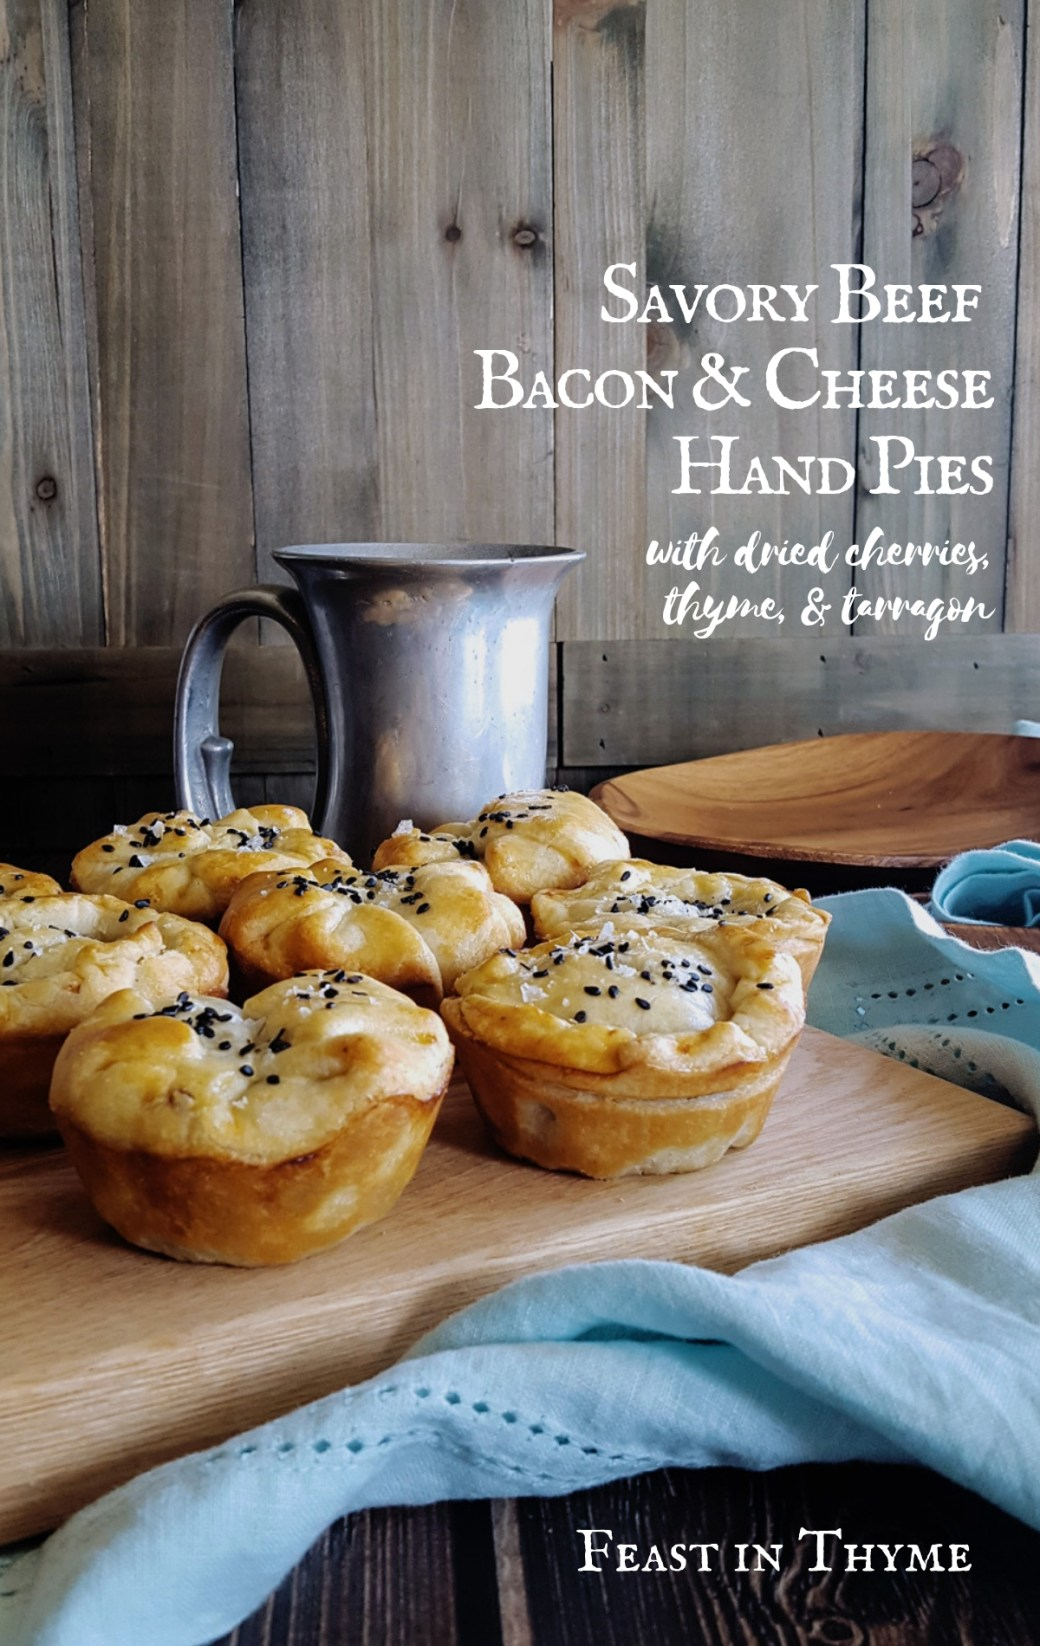 Savory Minced Beef, Bacon & Cheese Hand Pies